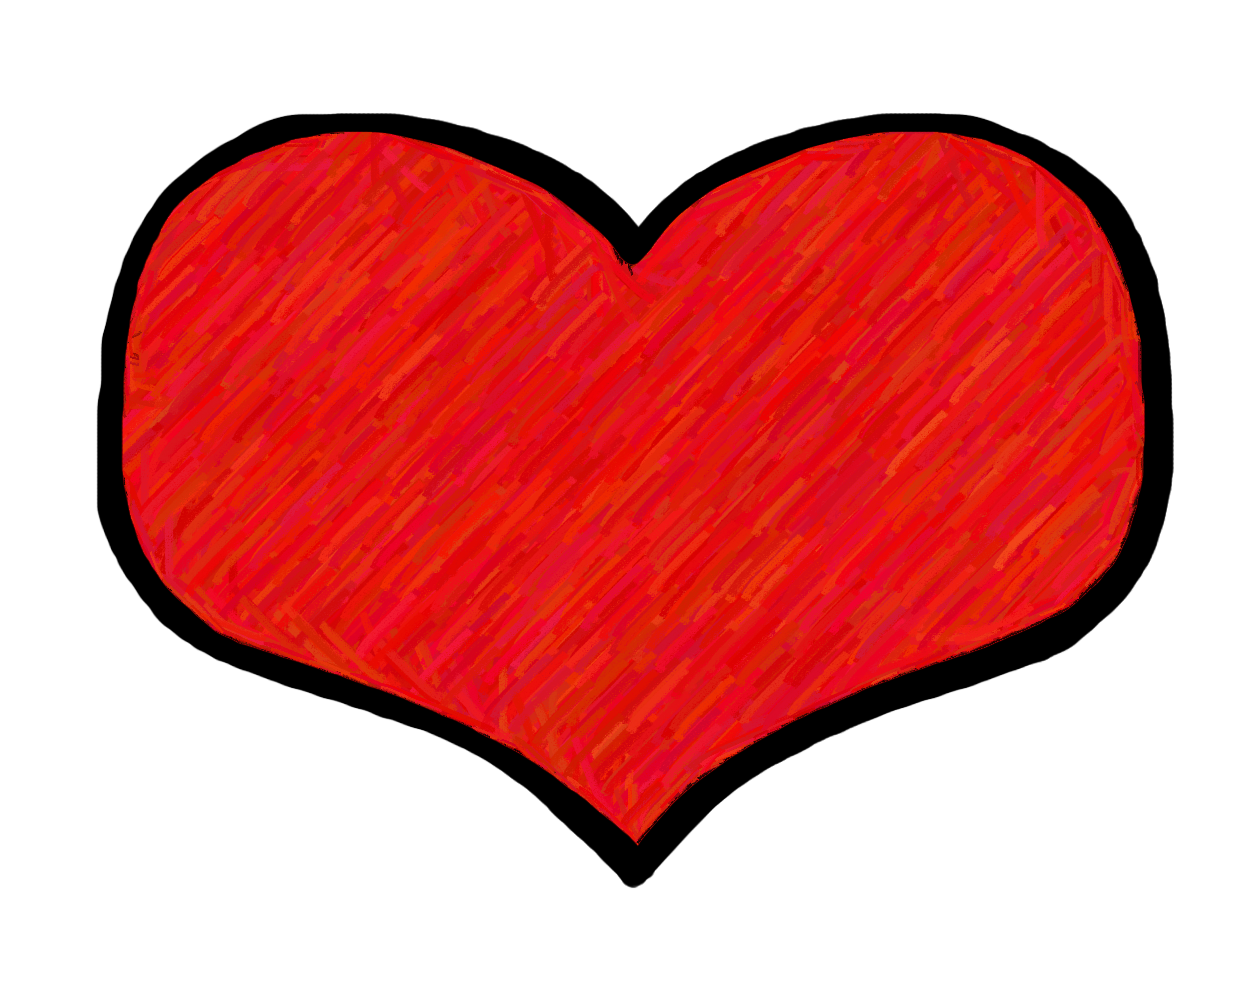 Heart Pictures Clipart | Clipart Panda - Free Clipart Images